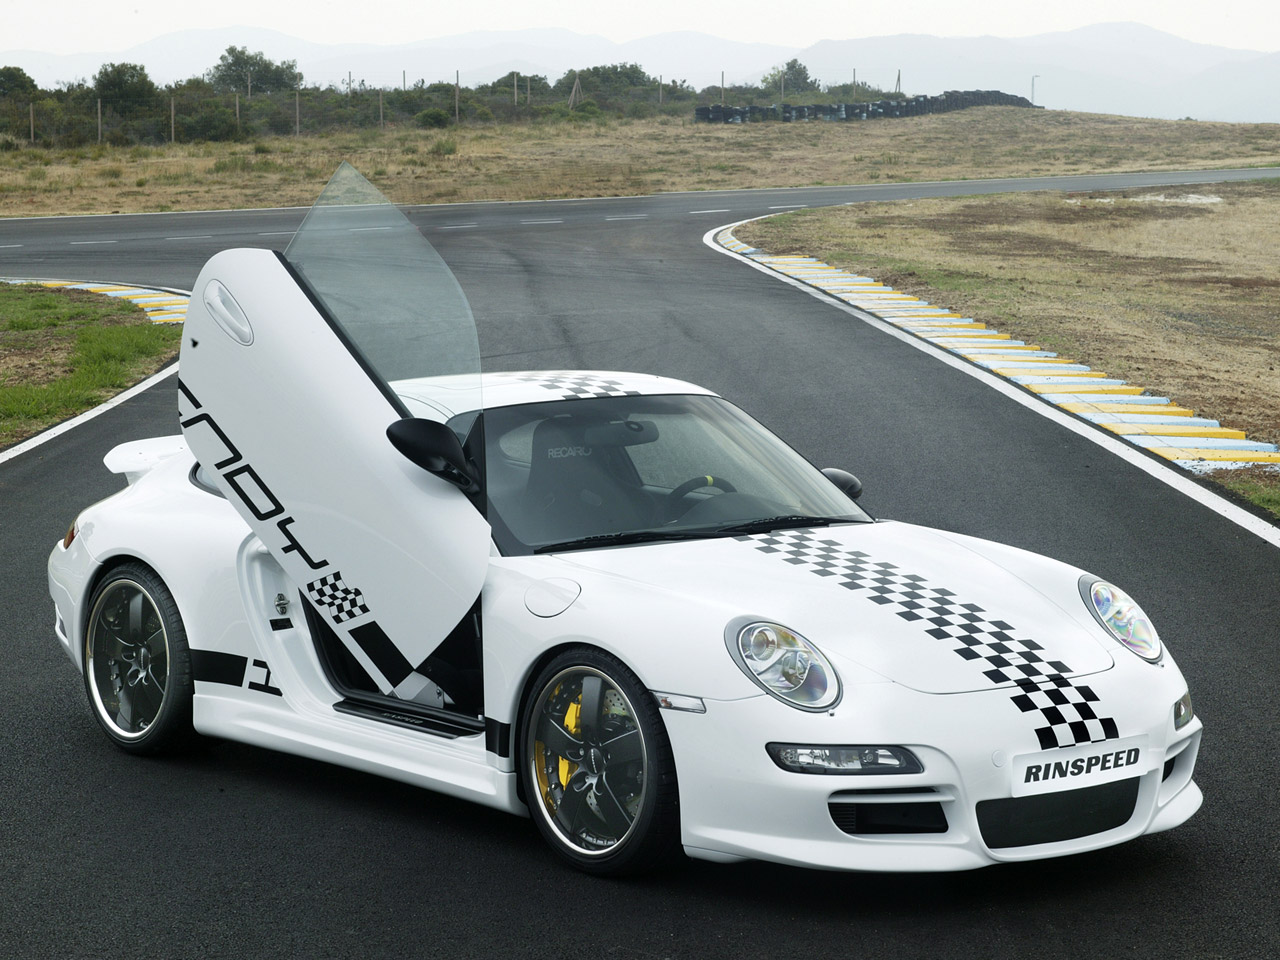 Rinspeed Porsche 997S Indy photo 26850